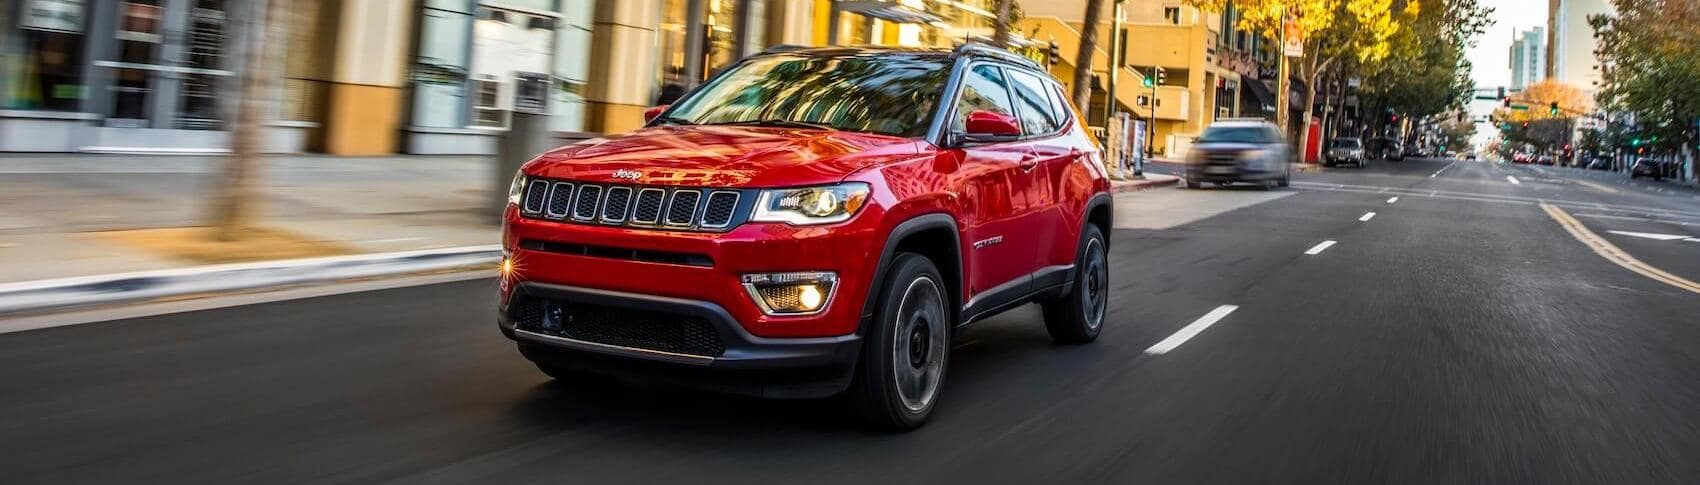 Jeep Compass Trailer Features